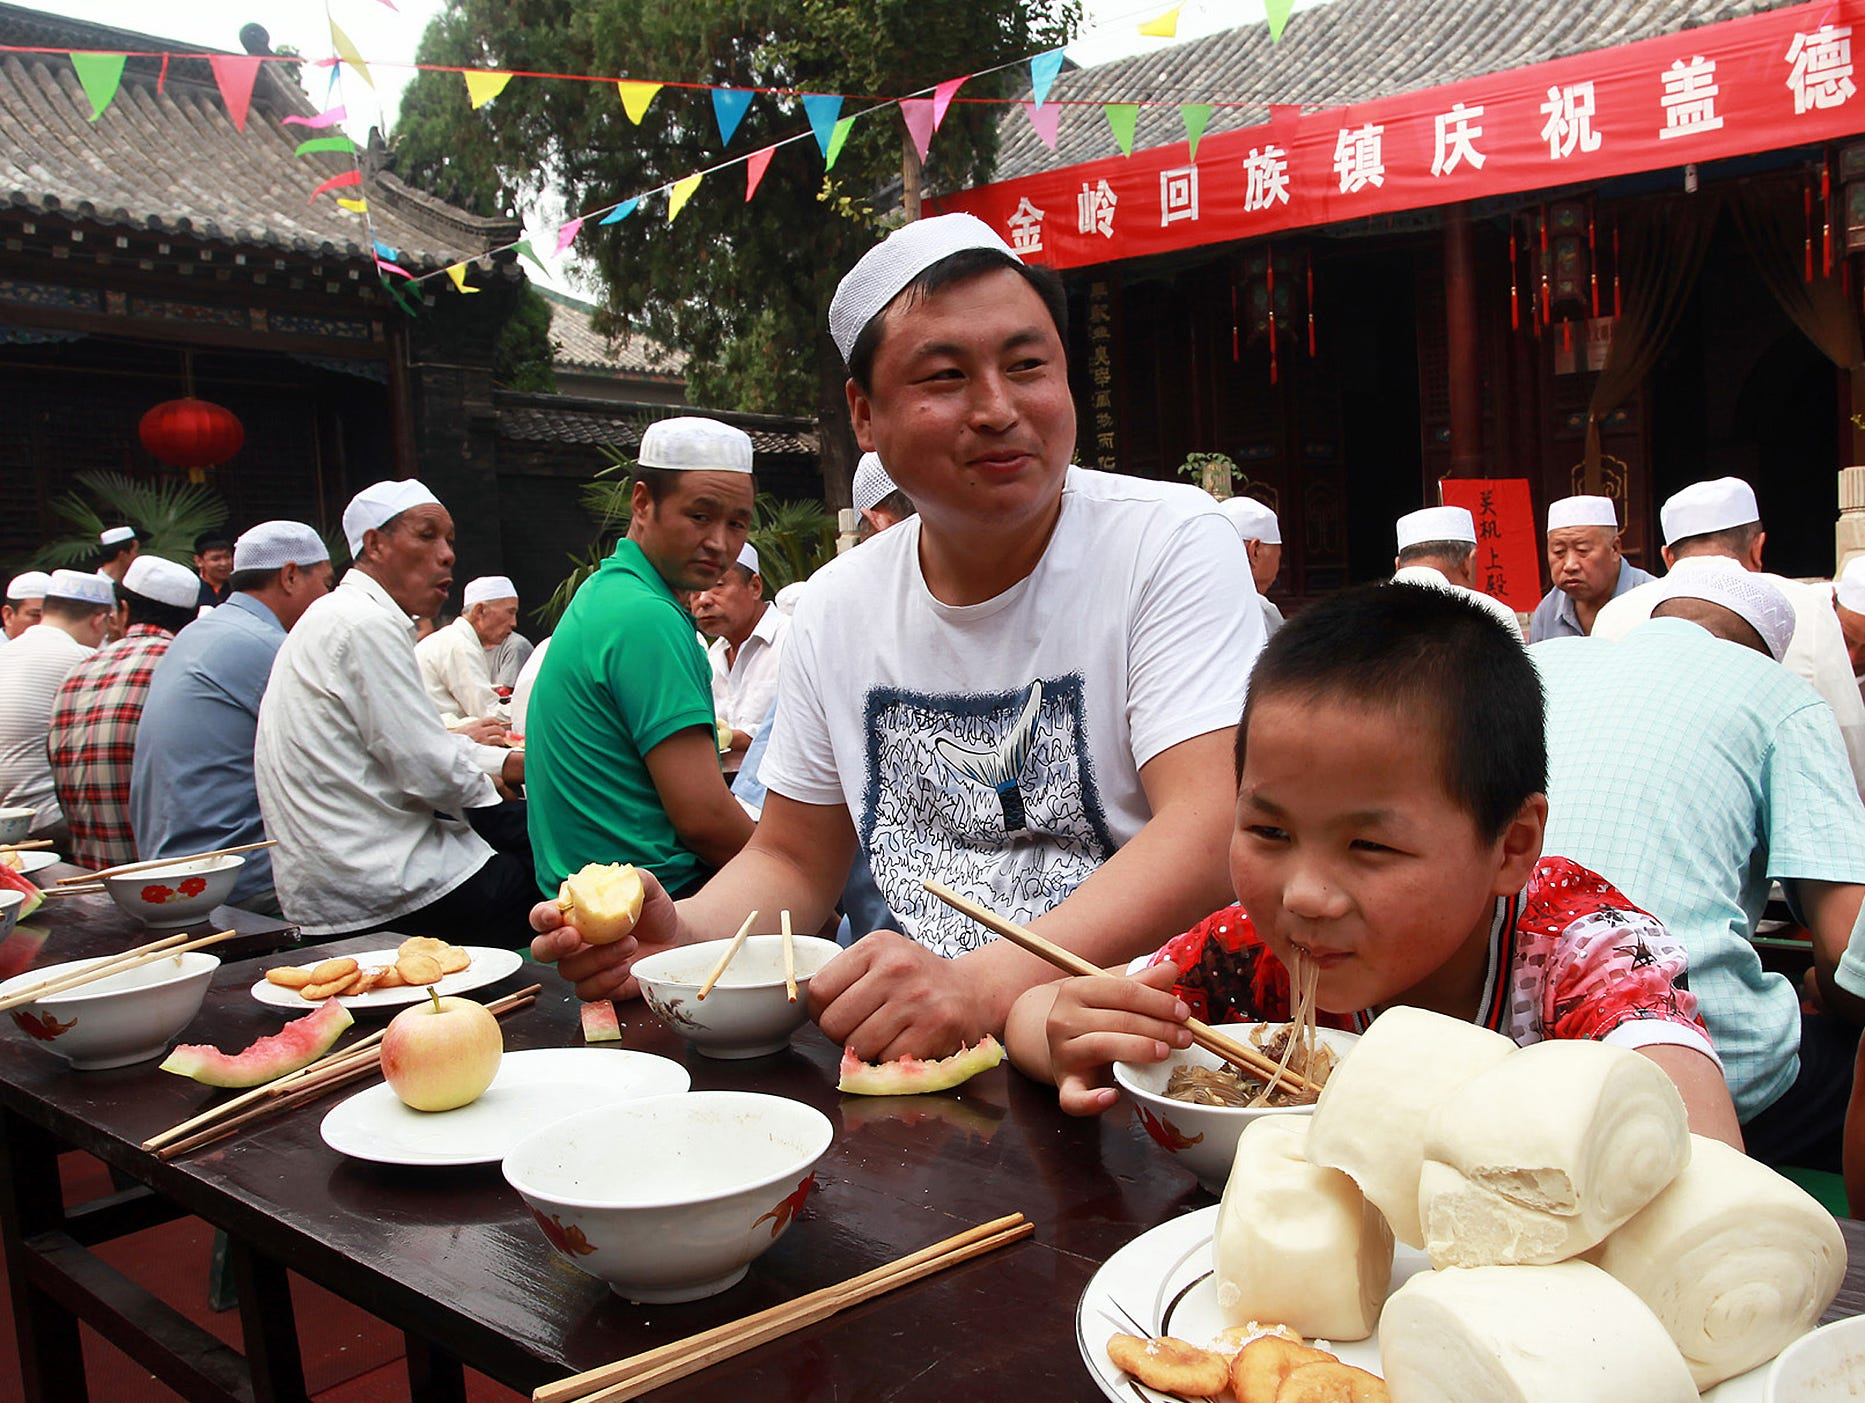 People eat as they celebrate Eid al-Fitr in Zibo, China.